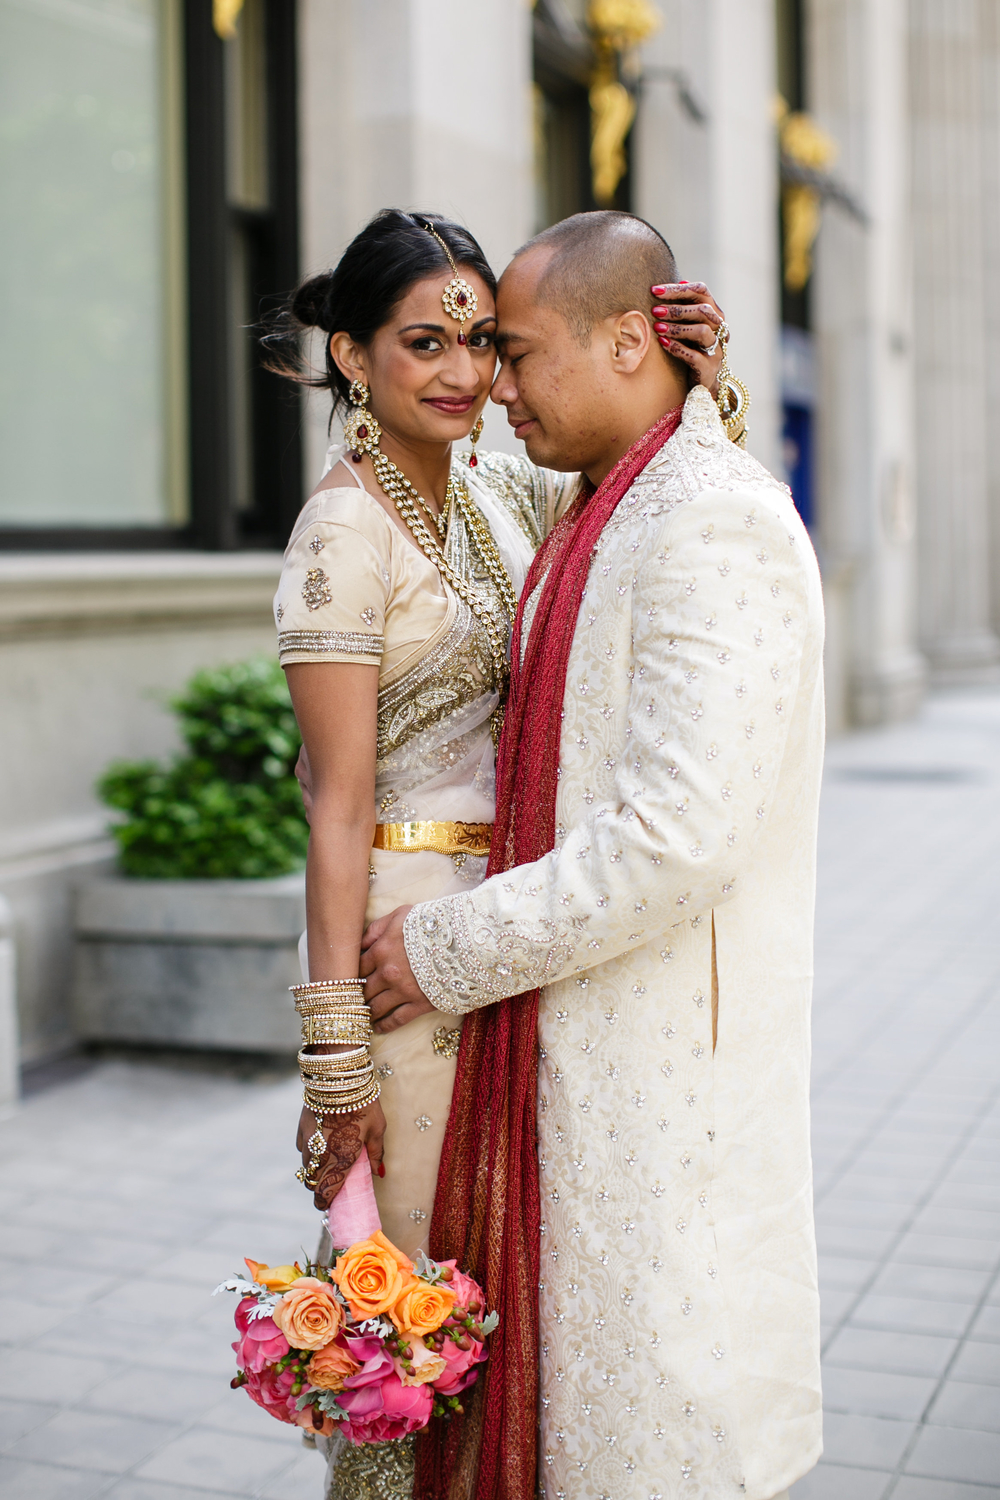 AnaisEvents_JihanCerdaPhotography_Priya-and-Jason - 048.jpg